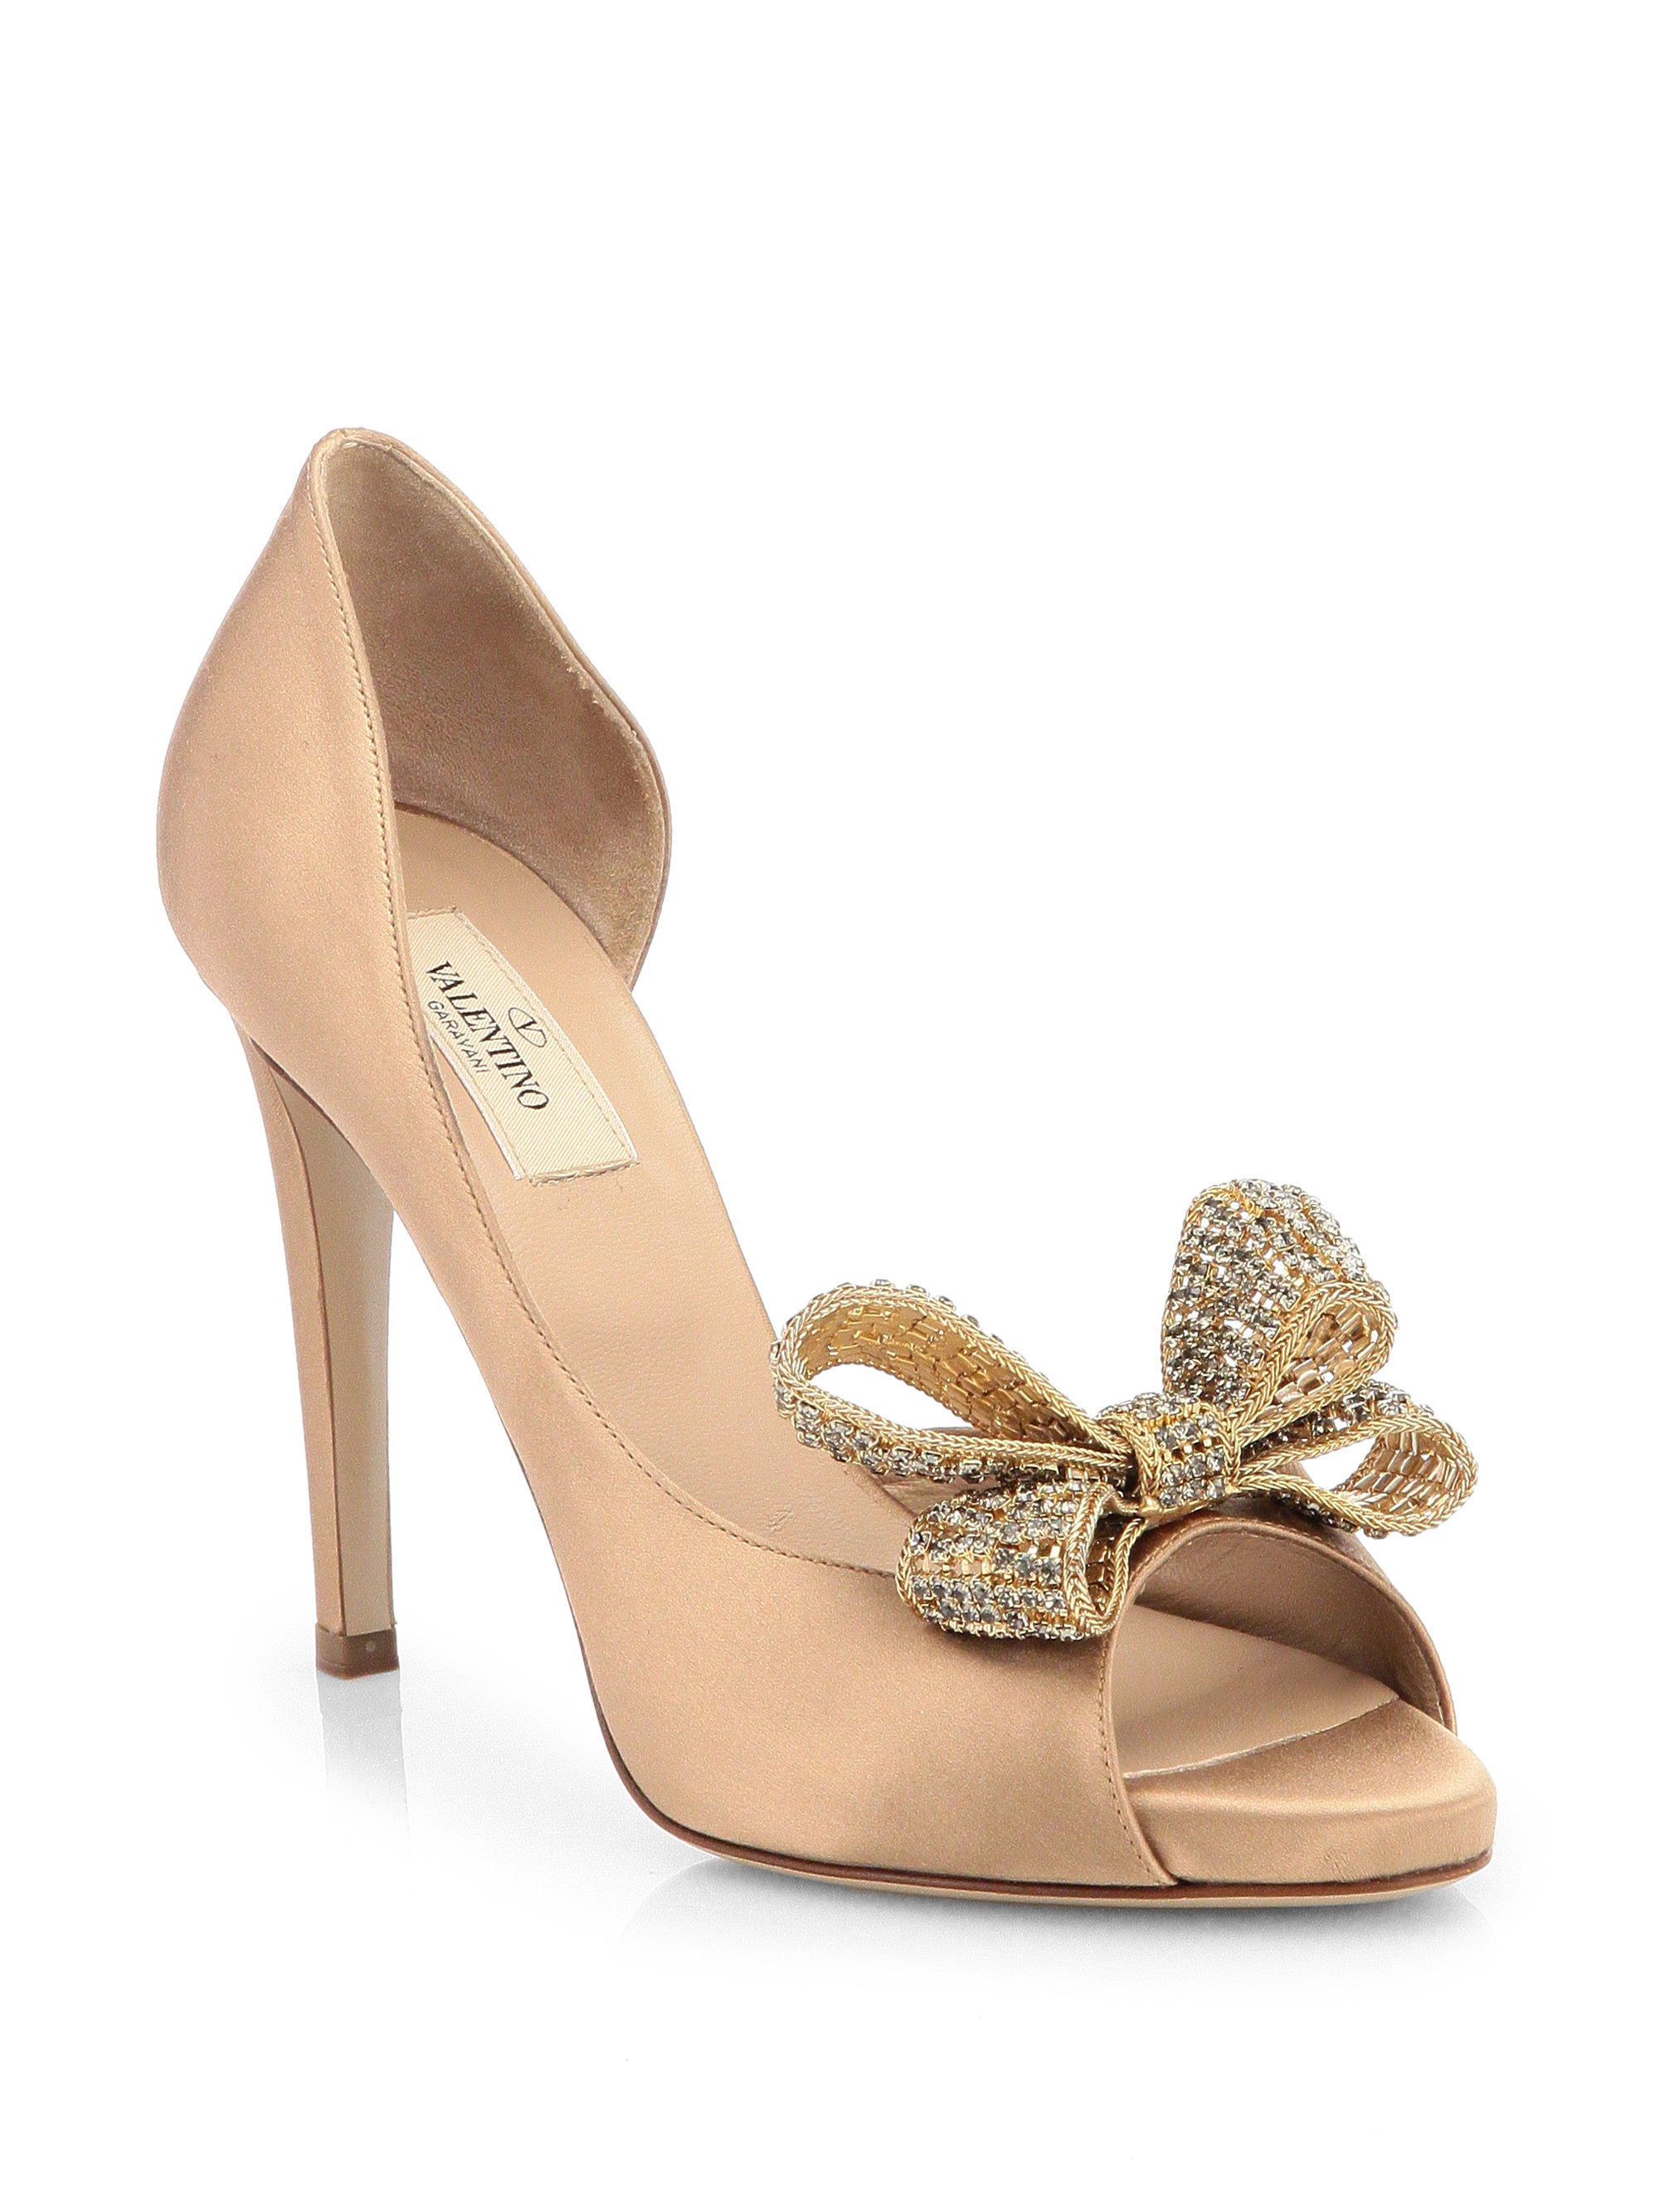 7ff8965fc54 Lyst - Valentino Satin Dorsay Evening Pump with Crystal Bowtie in ...